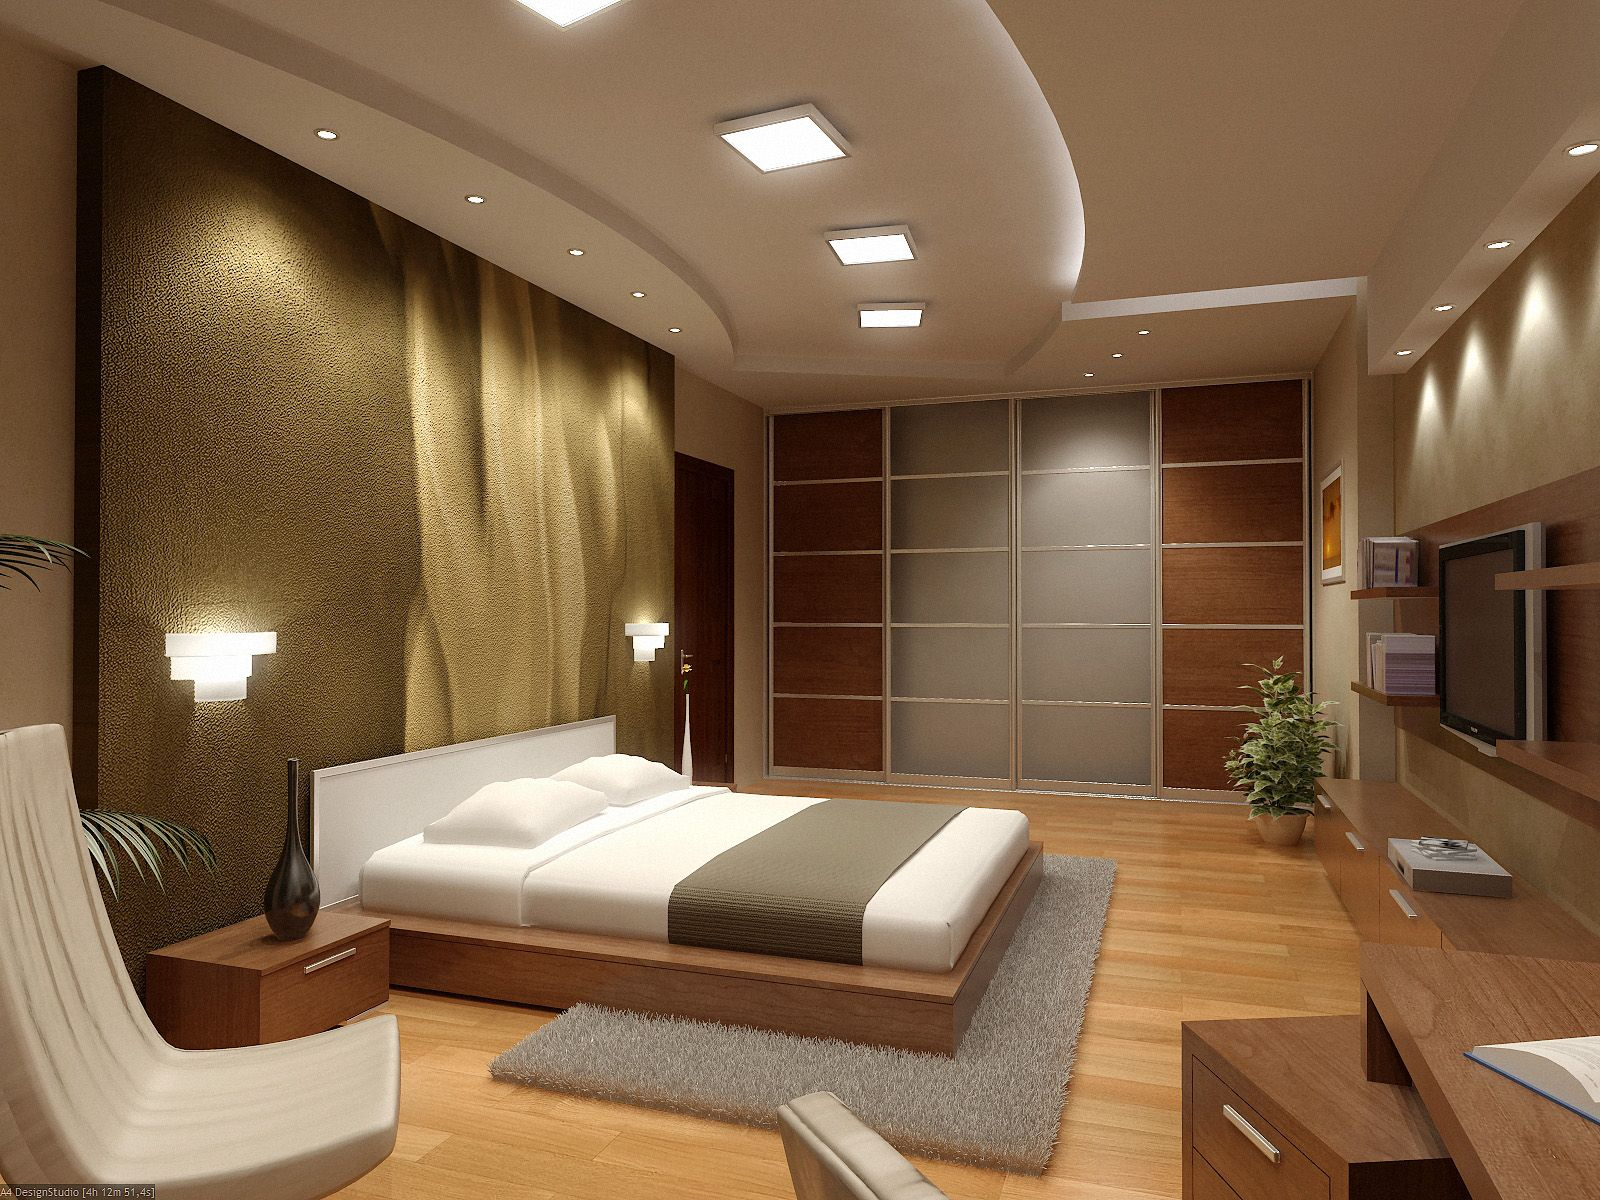 New home designs latest modern homes luxury interior for Modern interior bedroom designs